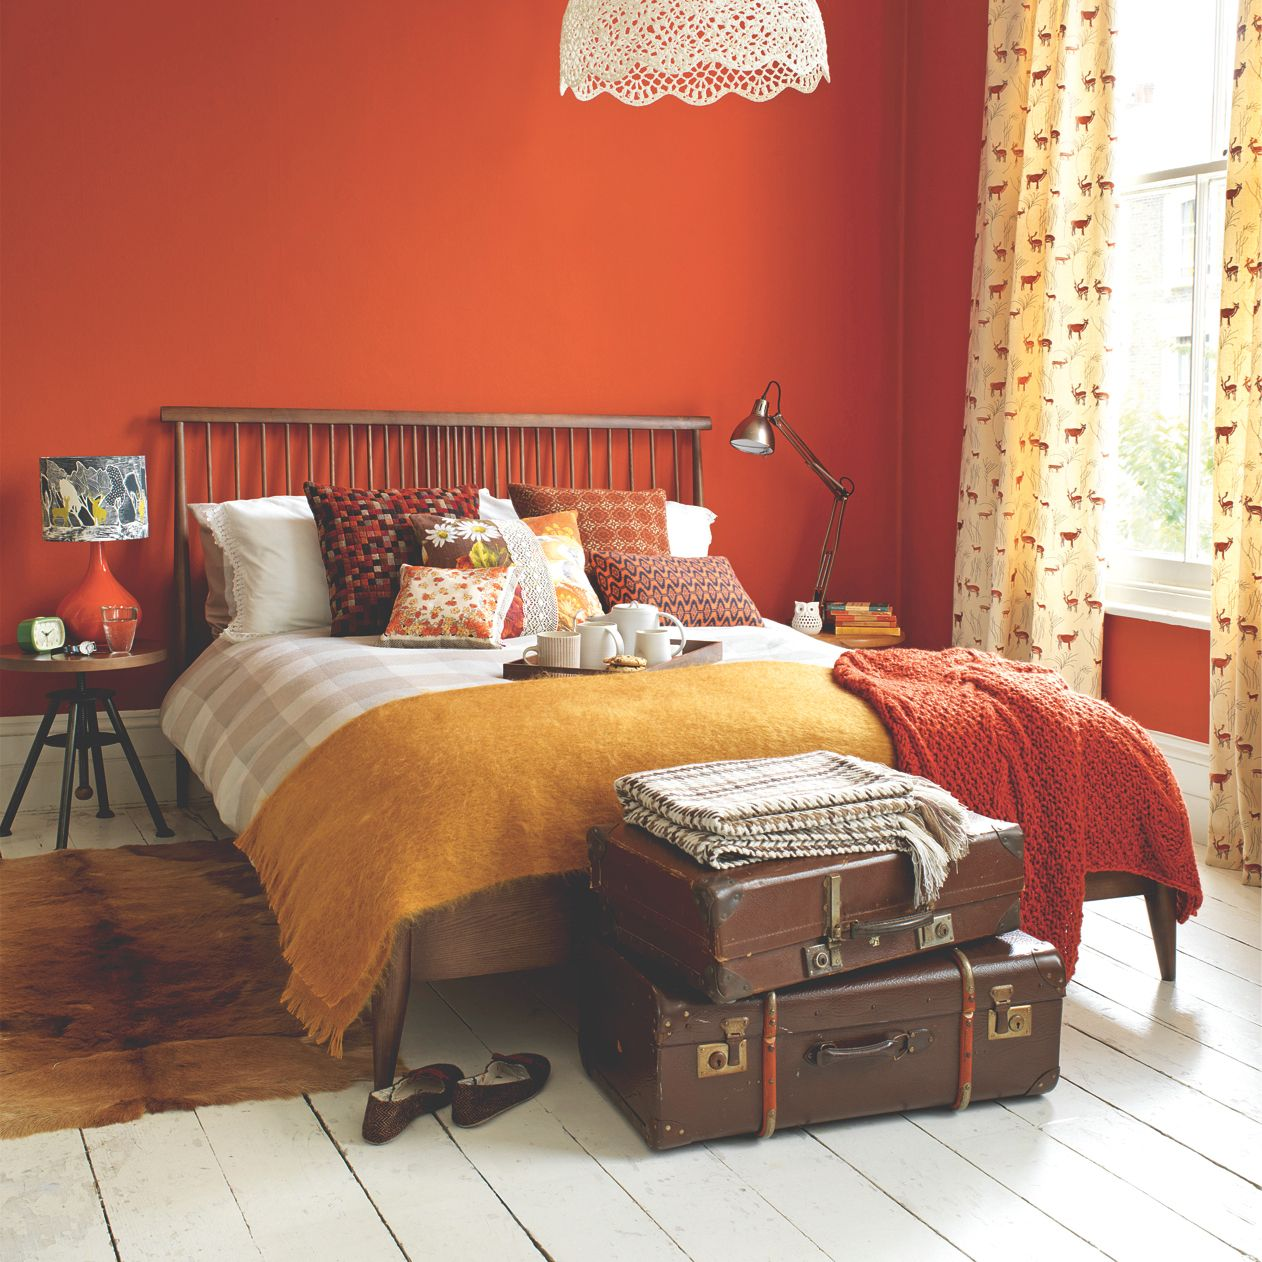 Colour Moods And Meanings In The Home